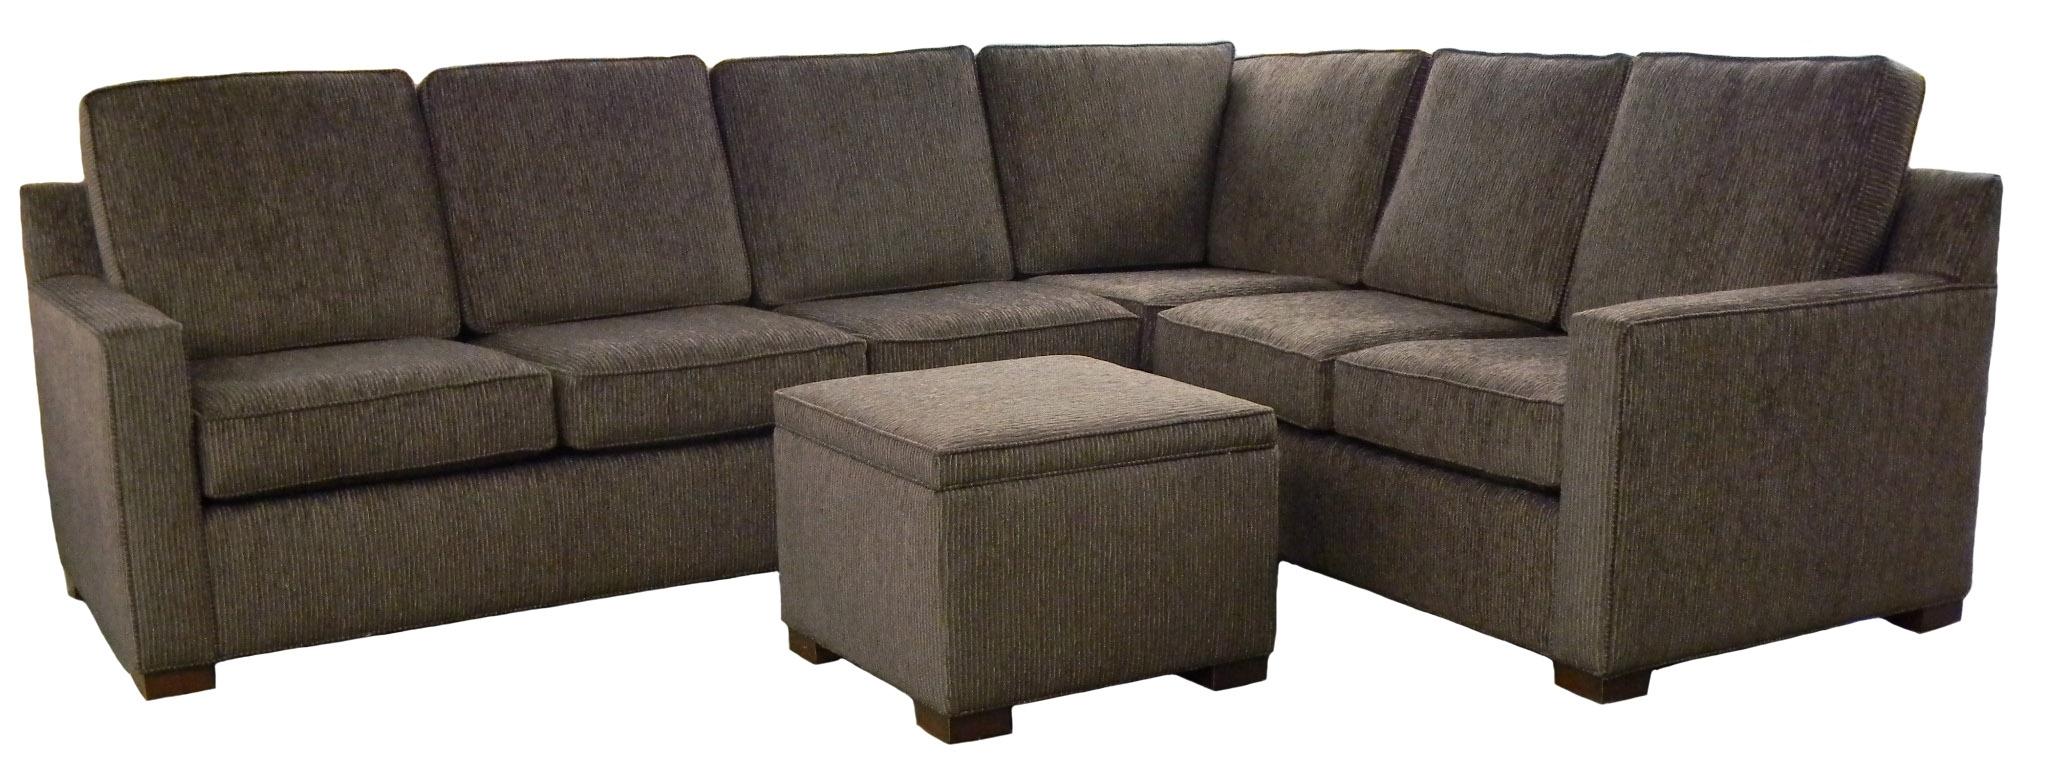 Customizable Sectional Sofas With Regard To Widely Used Examples Custom Sectional Sofas Carolina Chair Furniture (View 5 of 20)